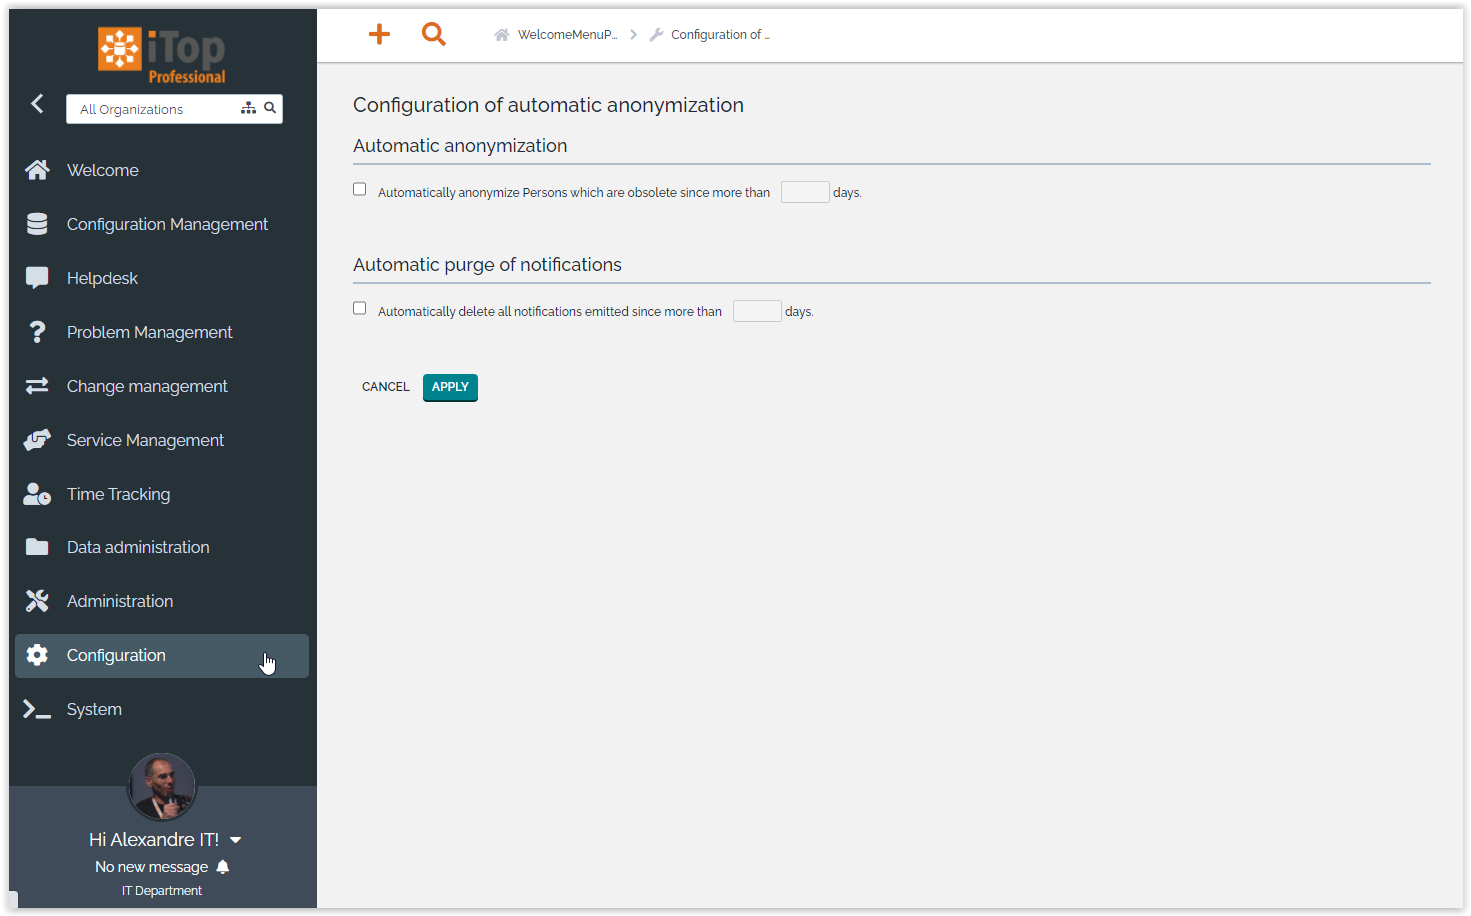 Configuration of the Automatic Anonymization